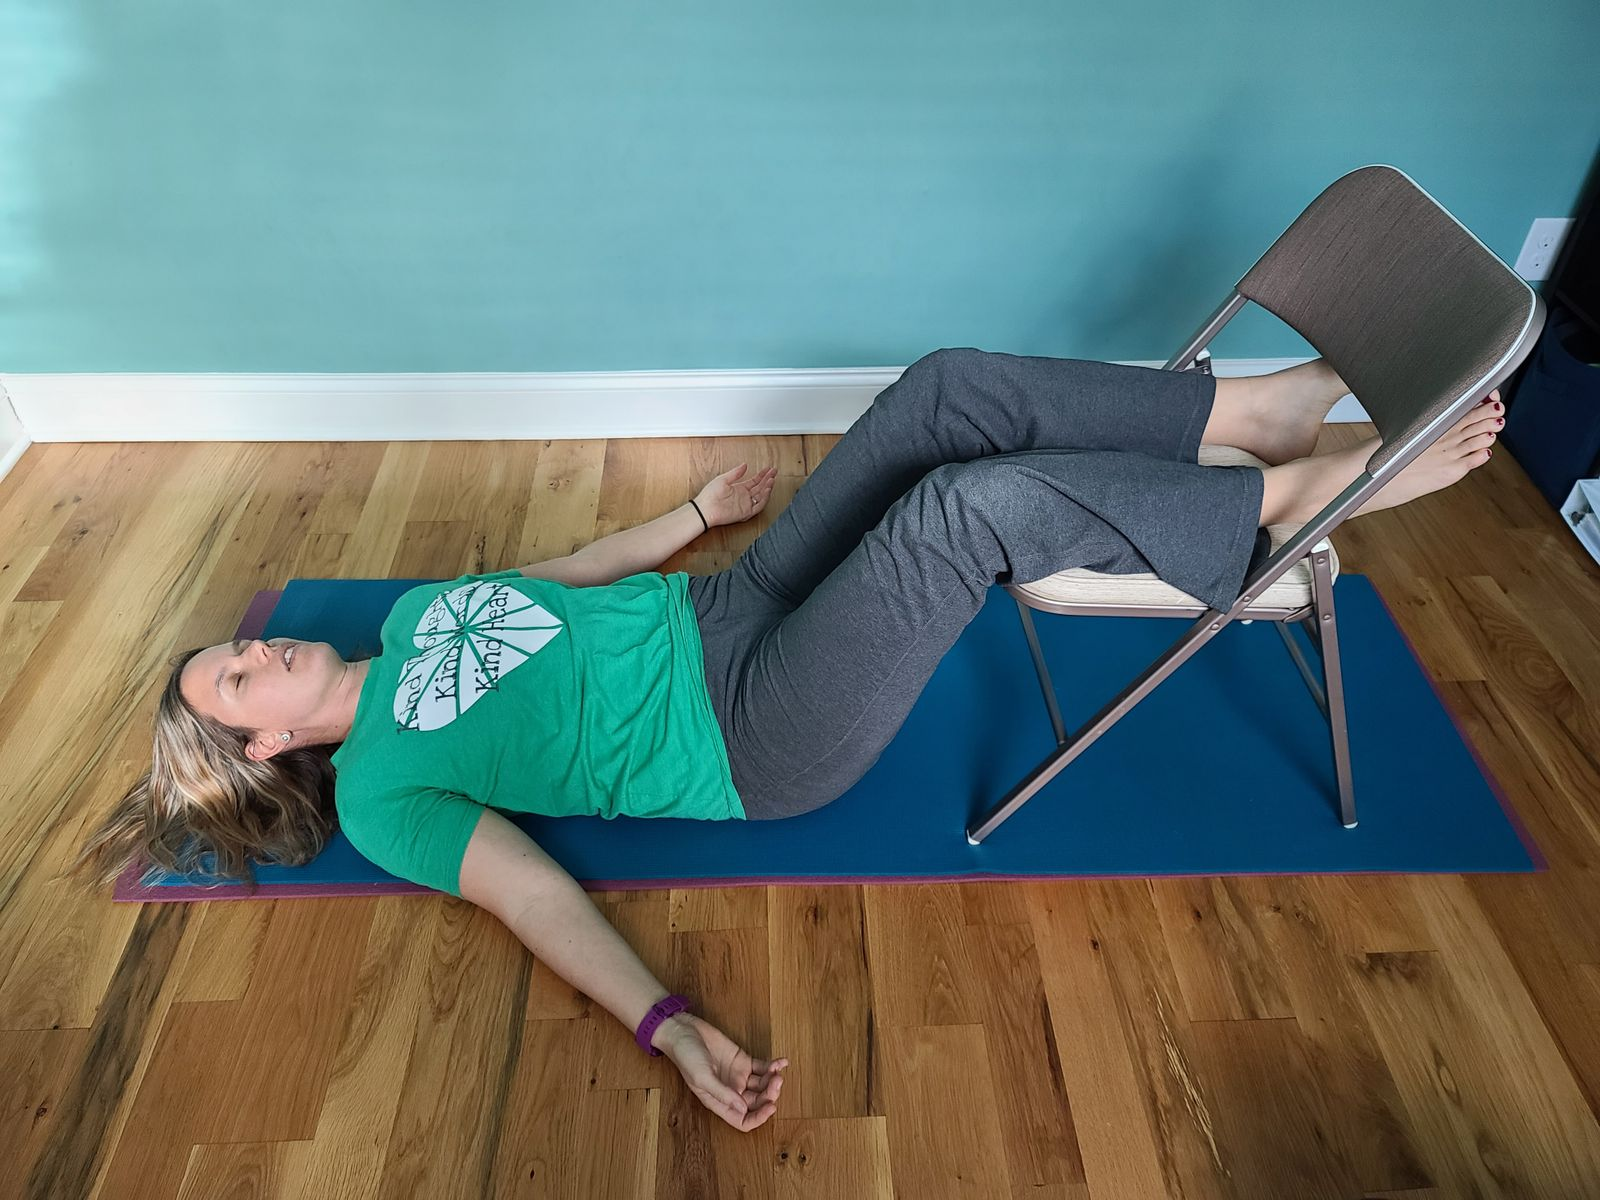 Relaxation- legs ups to unwind